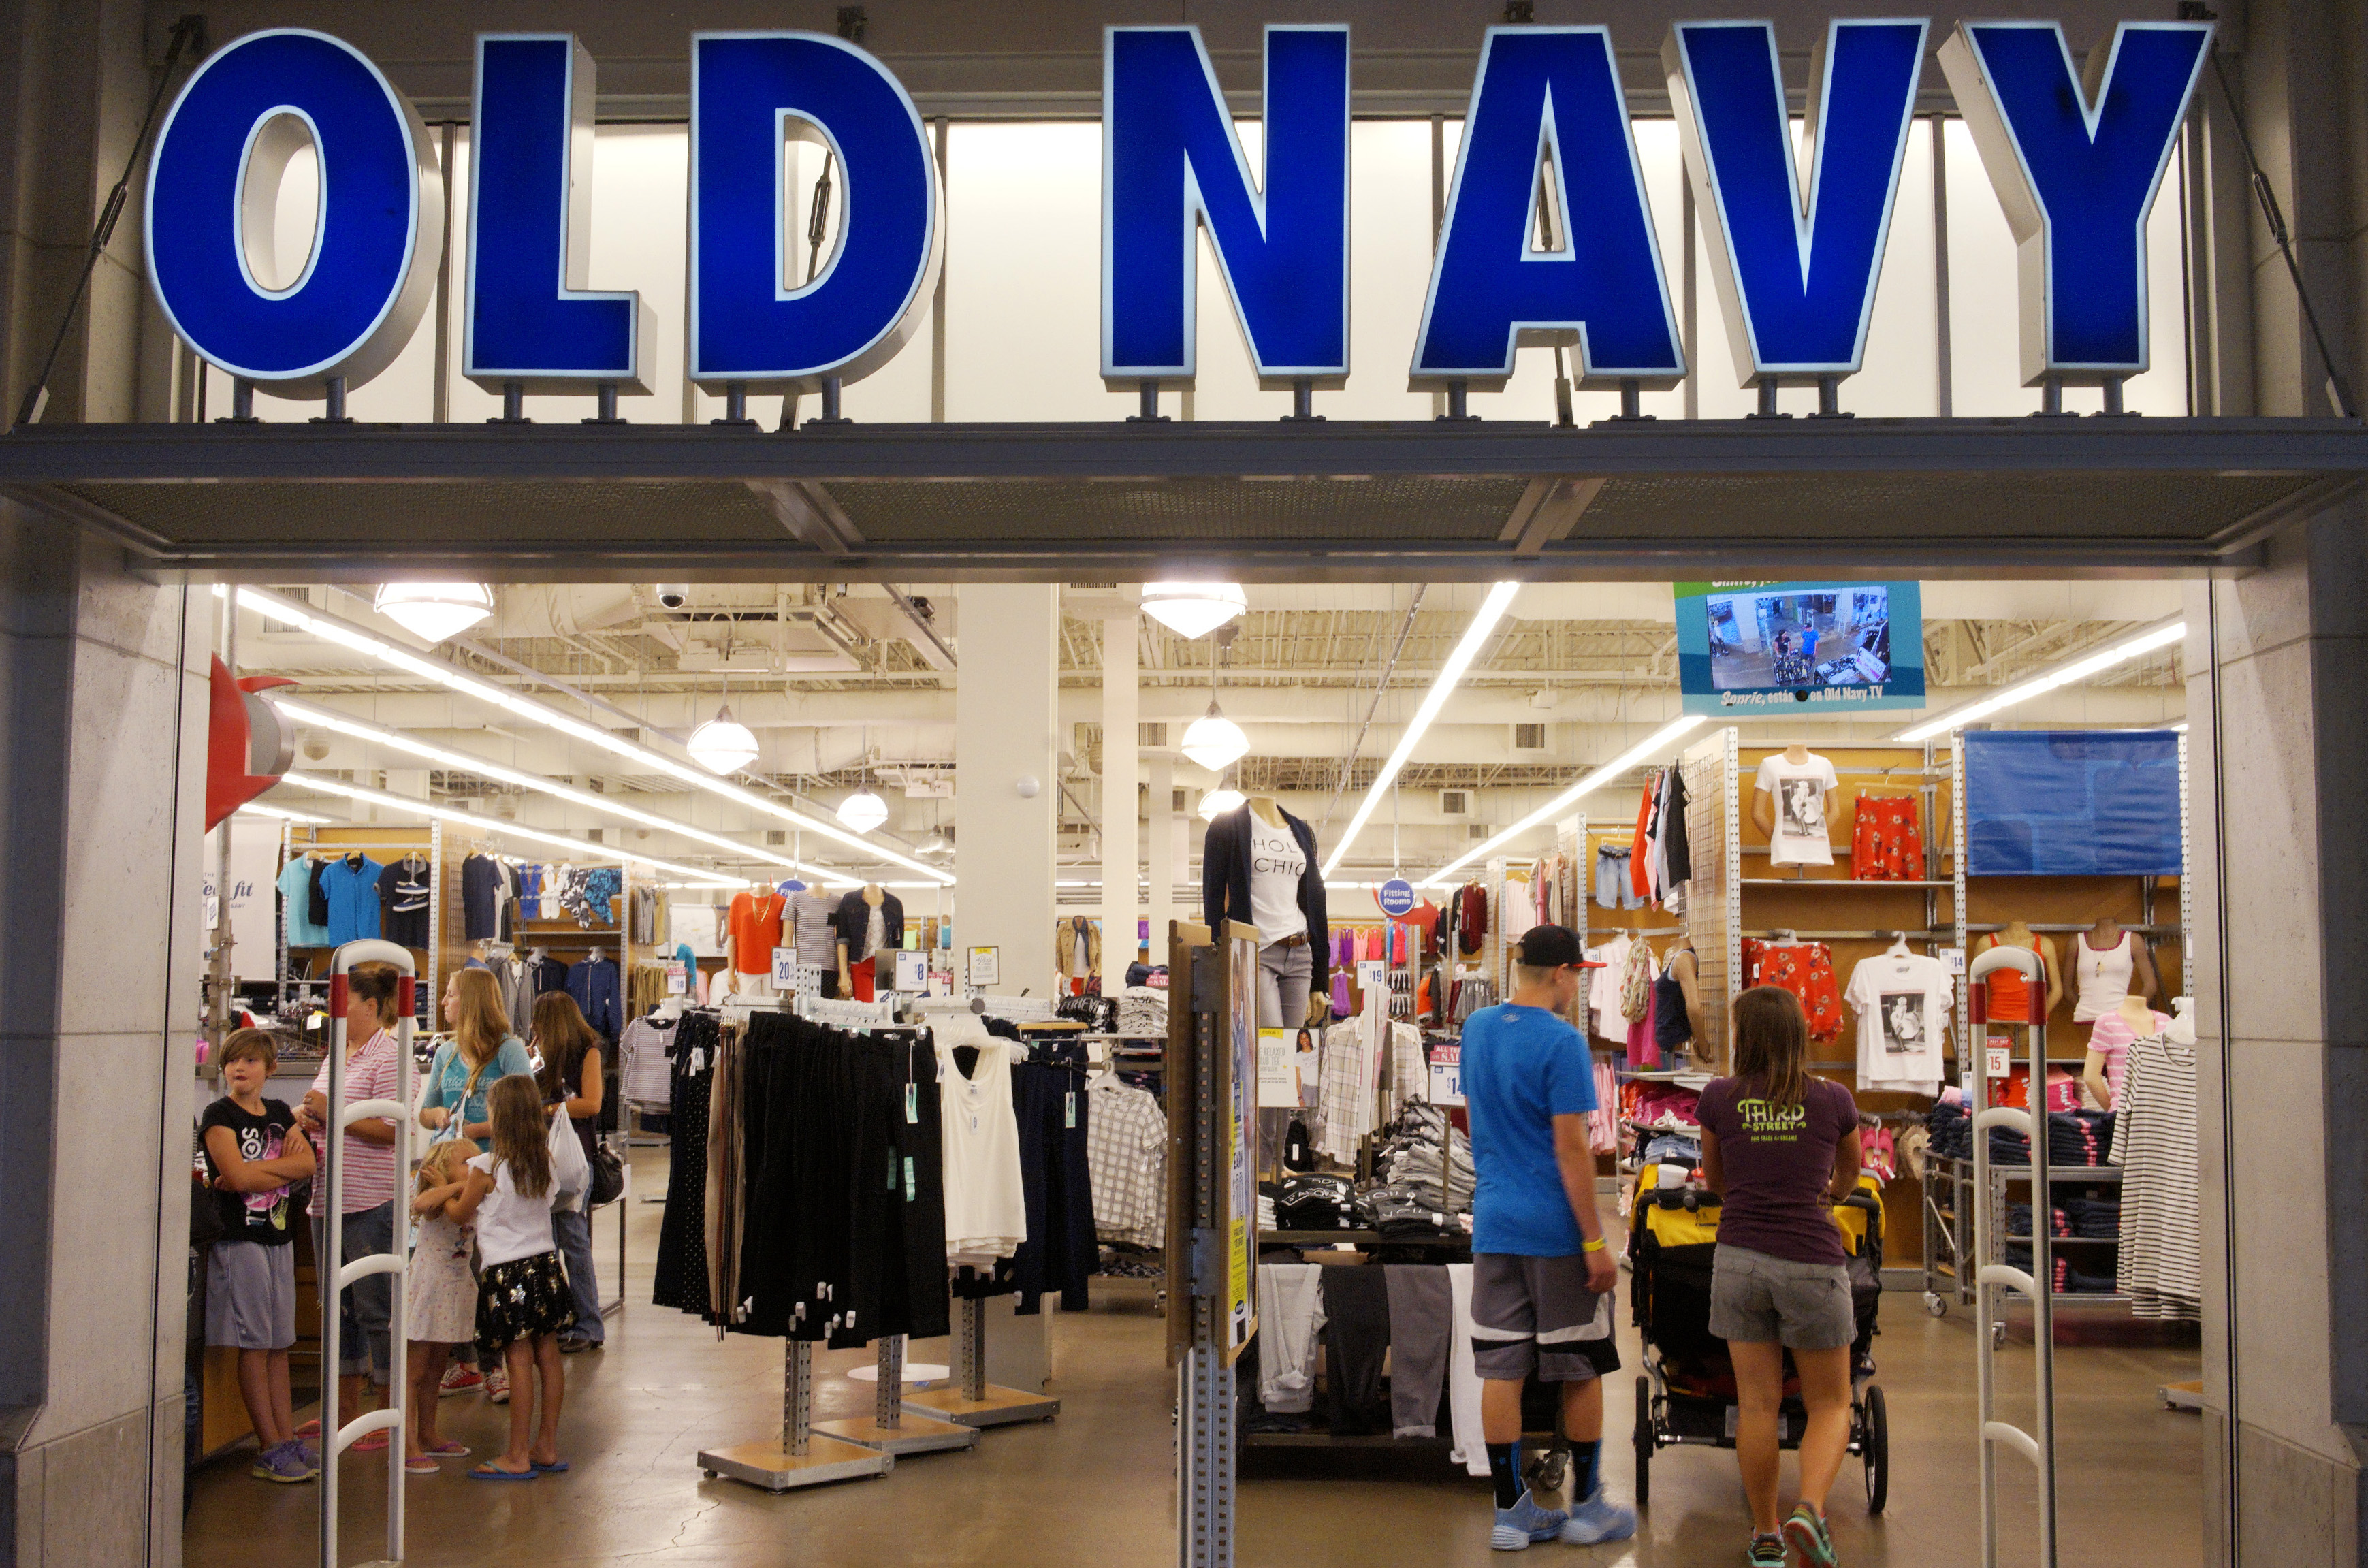 Shoppers enter the Old Navy store in Broomfield, Colorado August 22, 2014. Apparel retailer Gap Inc raised its full-year profit forecast, encouraged by strong sales of its lower-priced Old Navy clothes, and said it would open 40 stores in India as part of its strategy to expand in emerging markets.   REUTERS/Rick Wilking (UNITED STATES - Tags: BUSINESS TEXTILE FASHION) - GM1EA8N0BEZ01